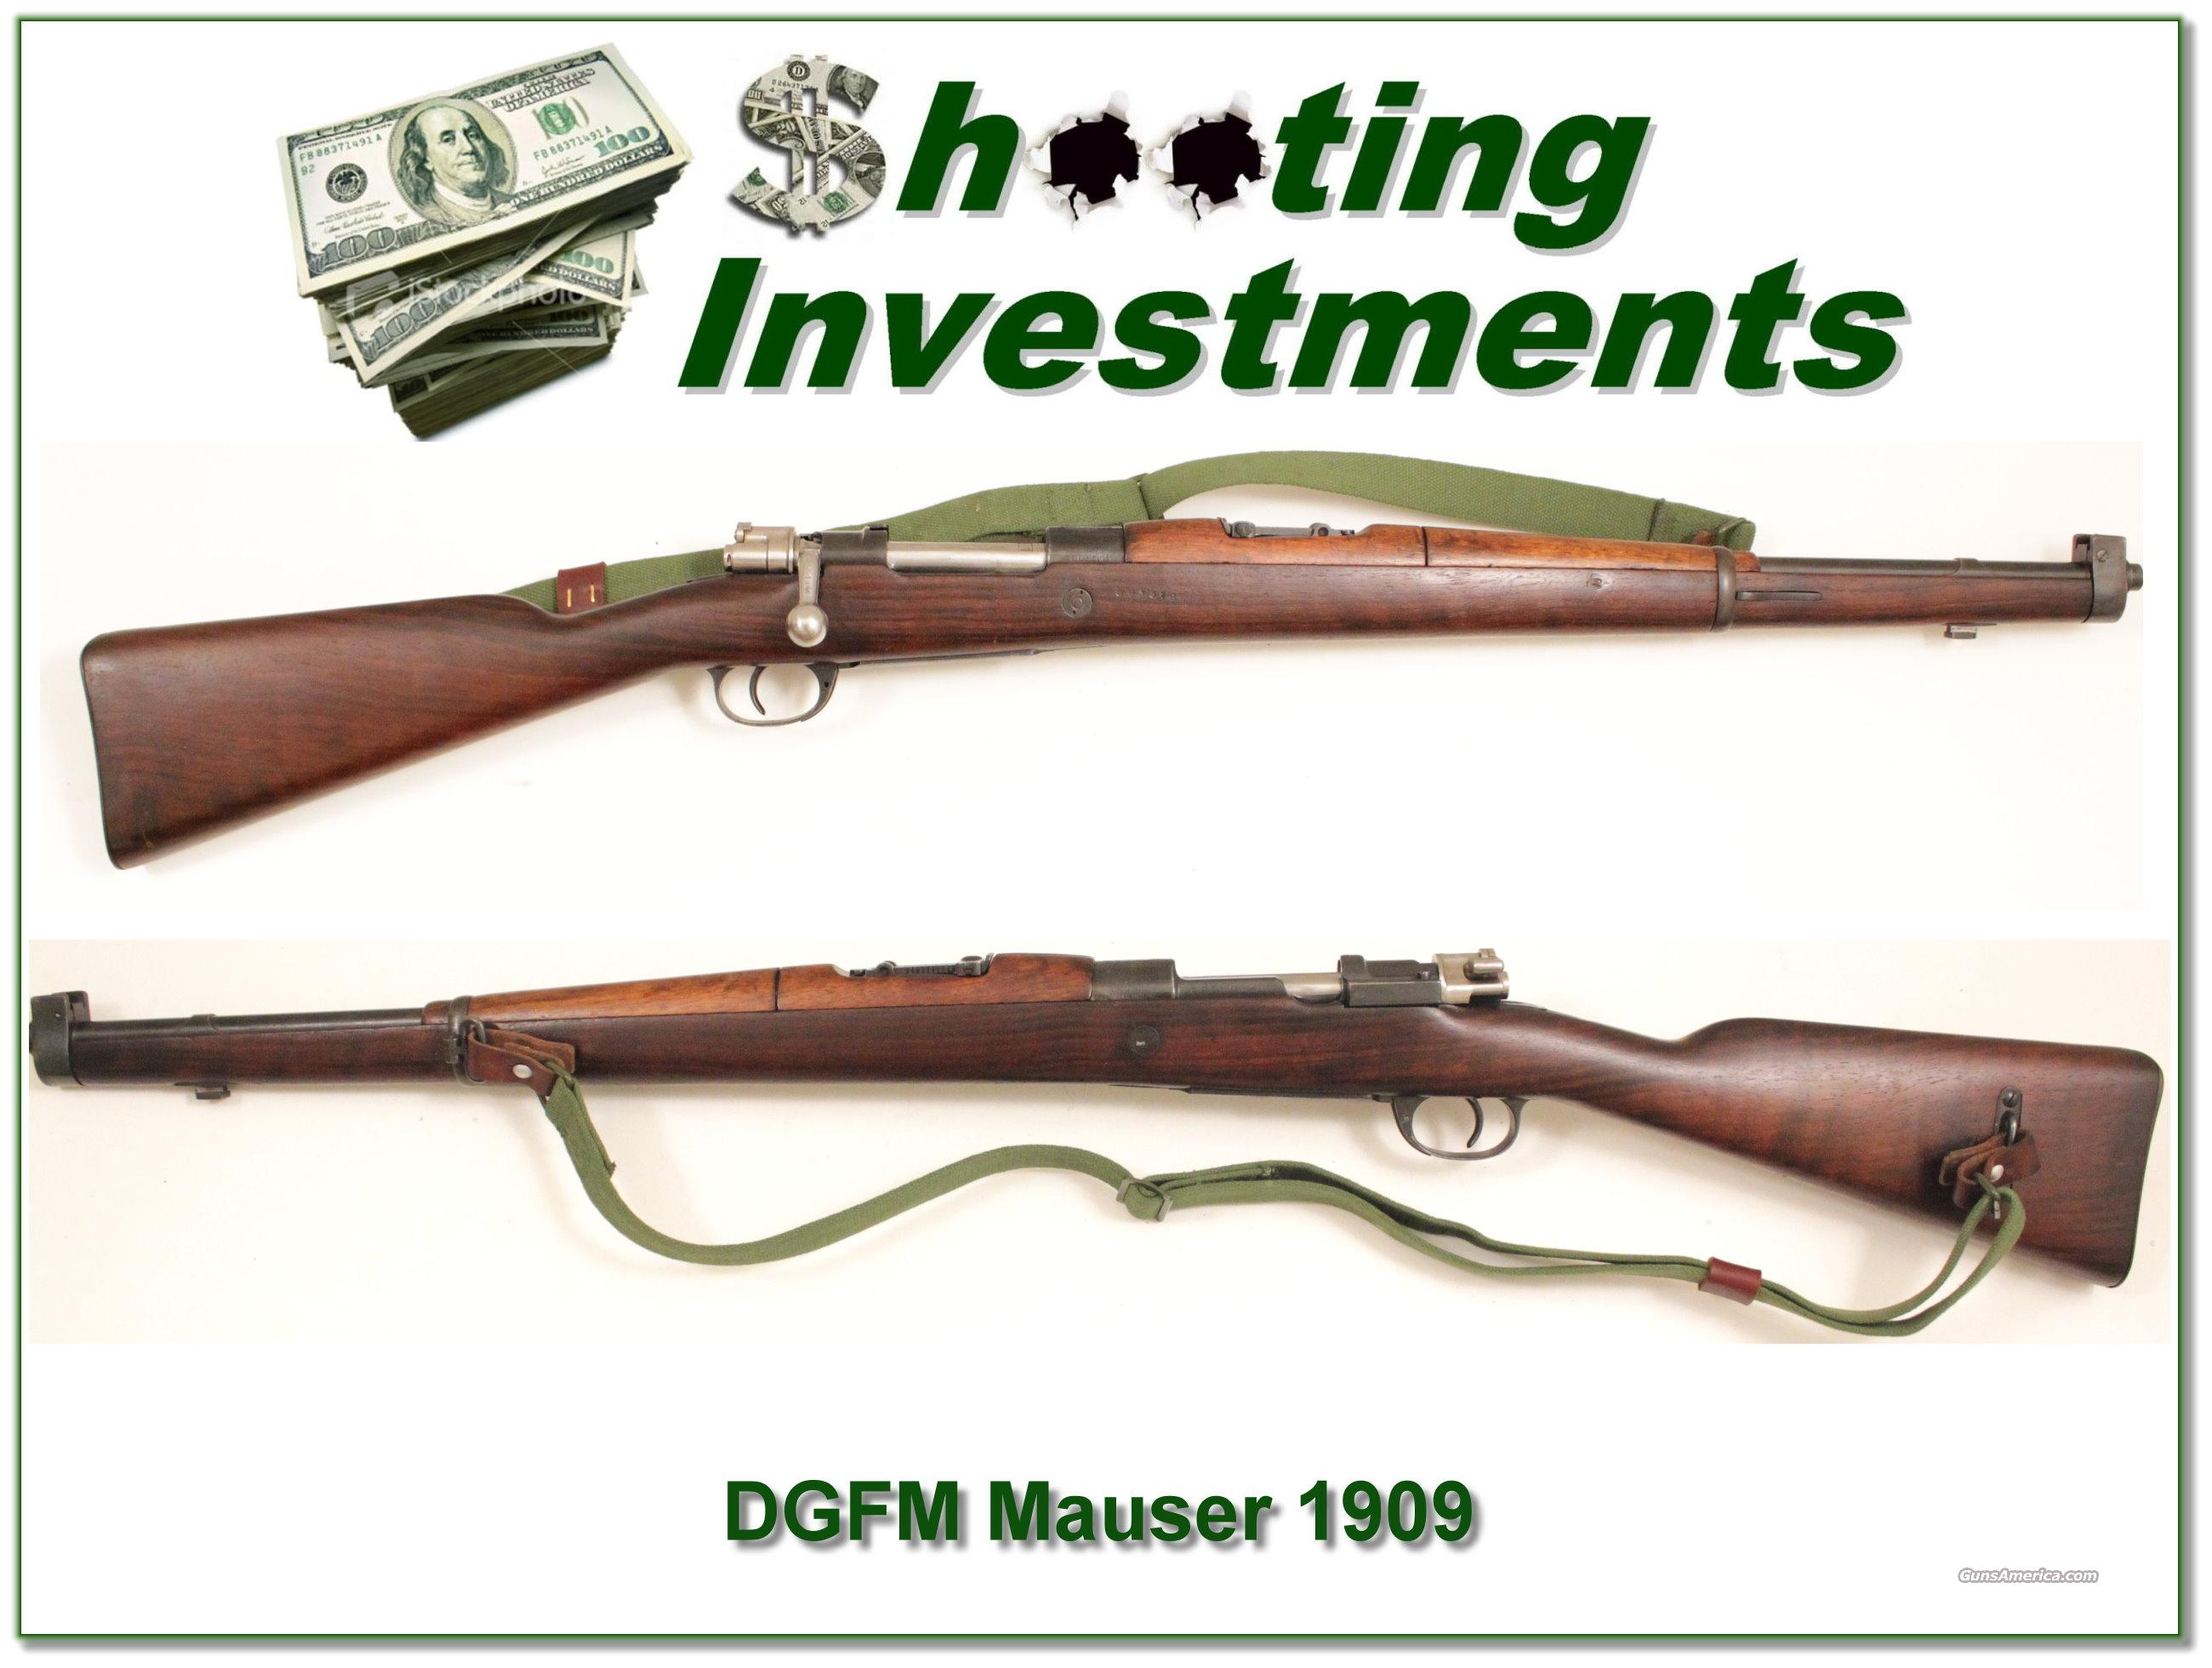 DGFM Mauser 1909 Carbine 7.65 Arg.  Guns > Rifles > Military Misc. Rifles Non-US > Other